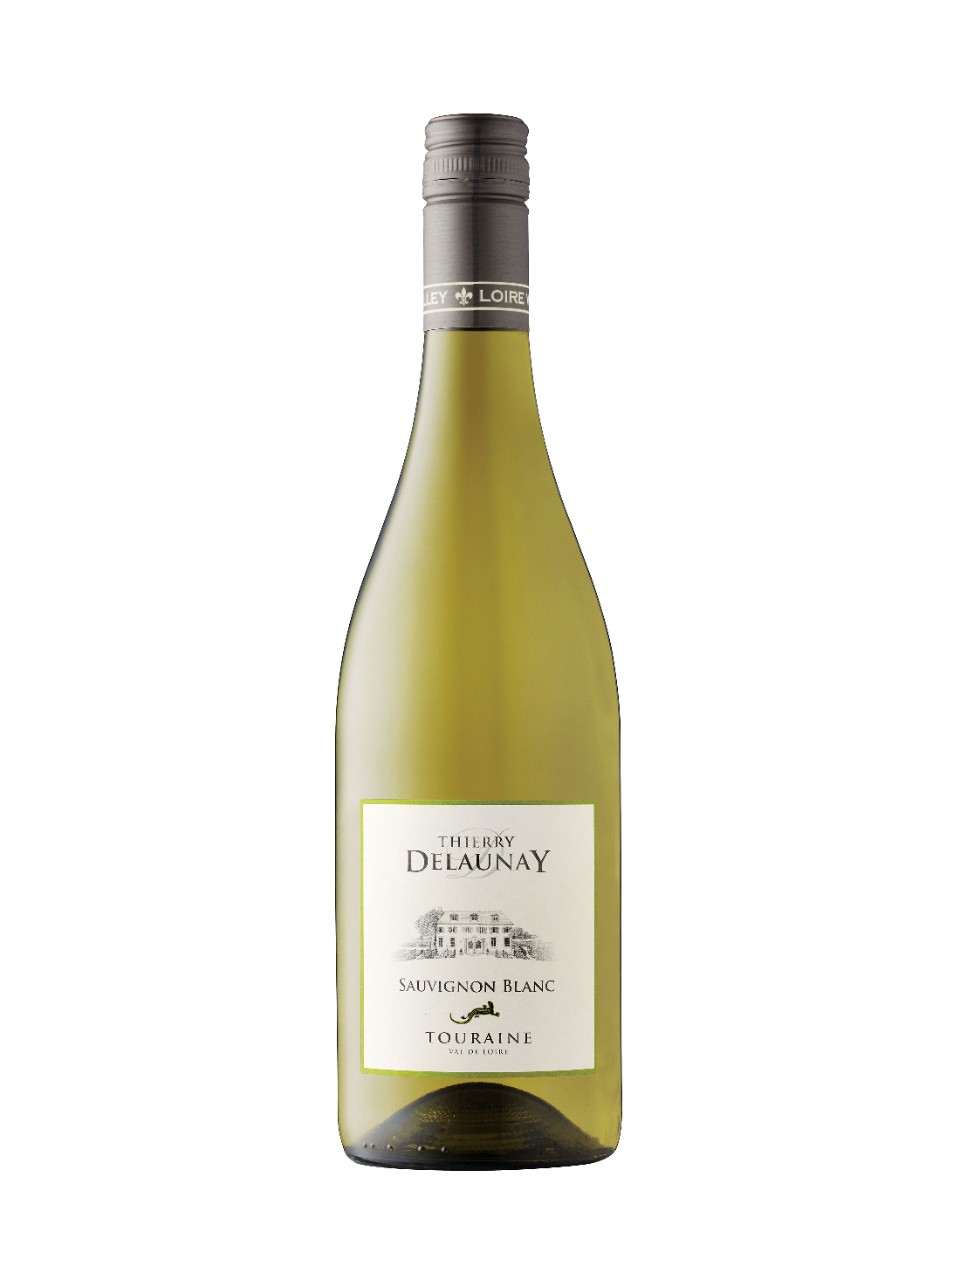 Thierry Delaunay Touraine Sauvignon Blanc 2019 from LCBO